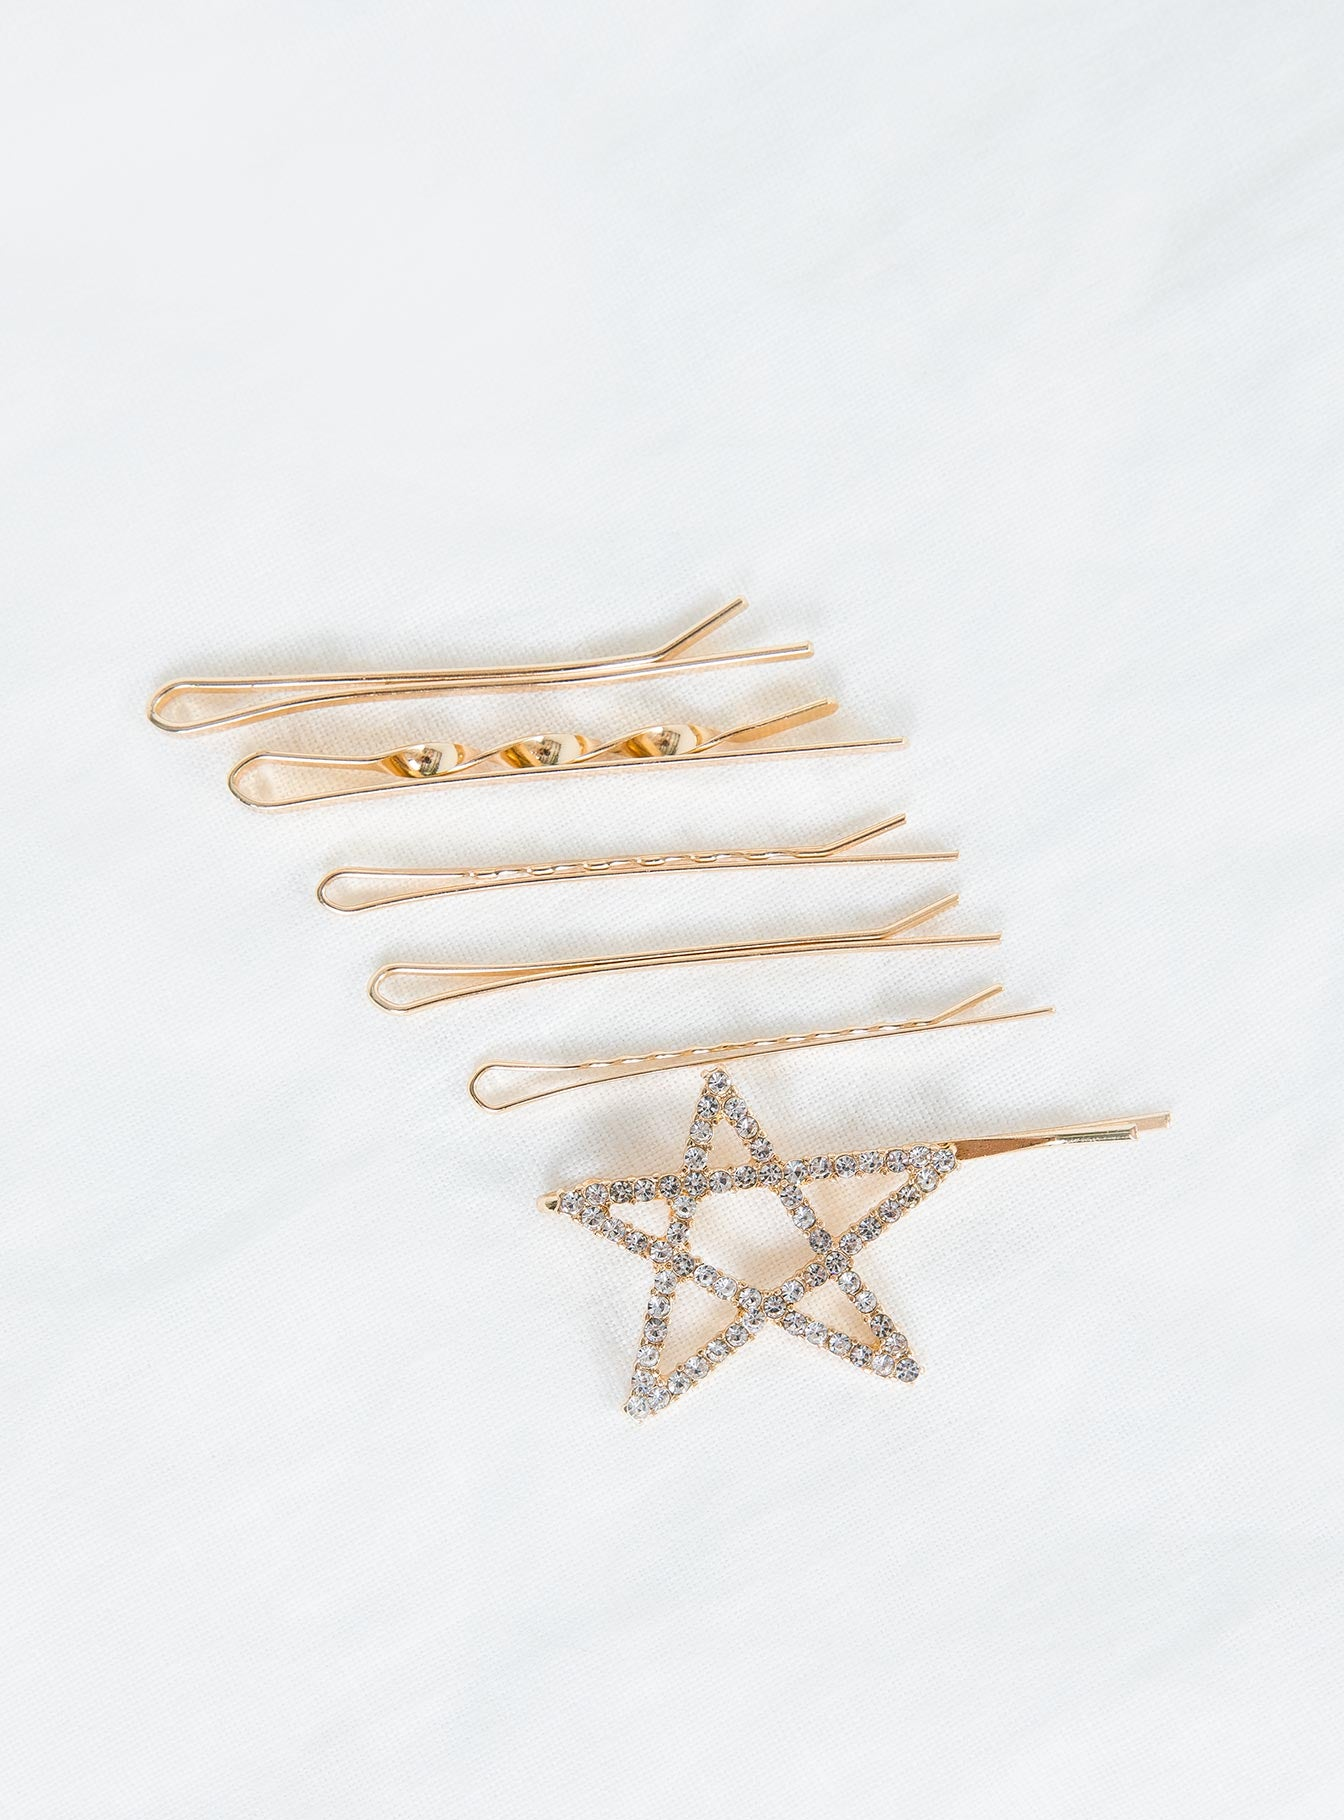 Bunchan Hair Clip Pack